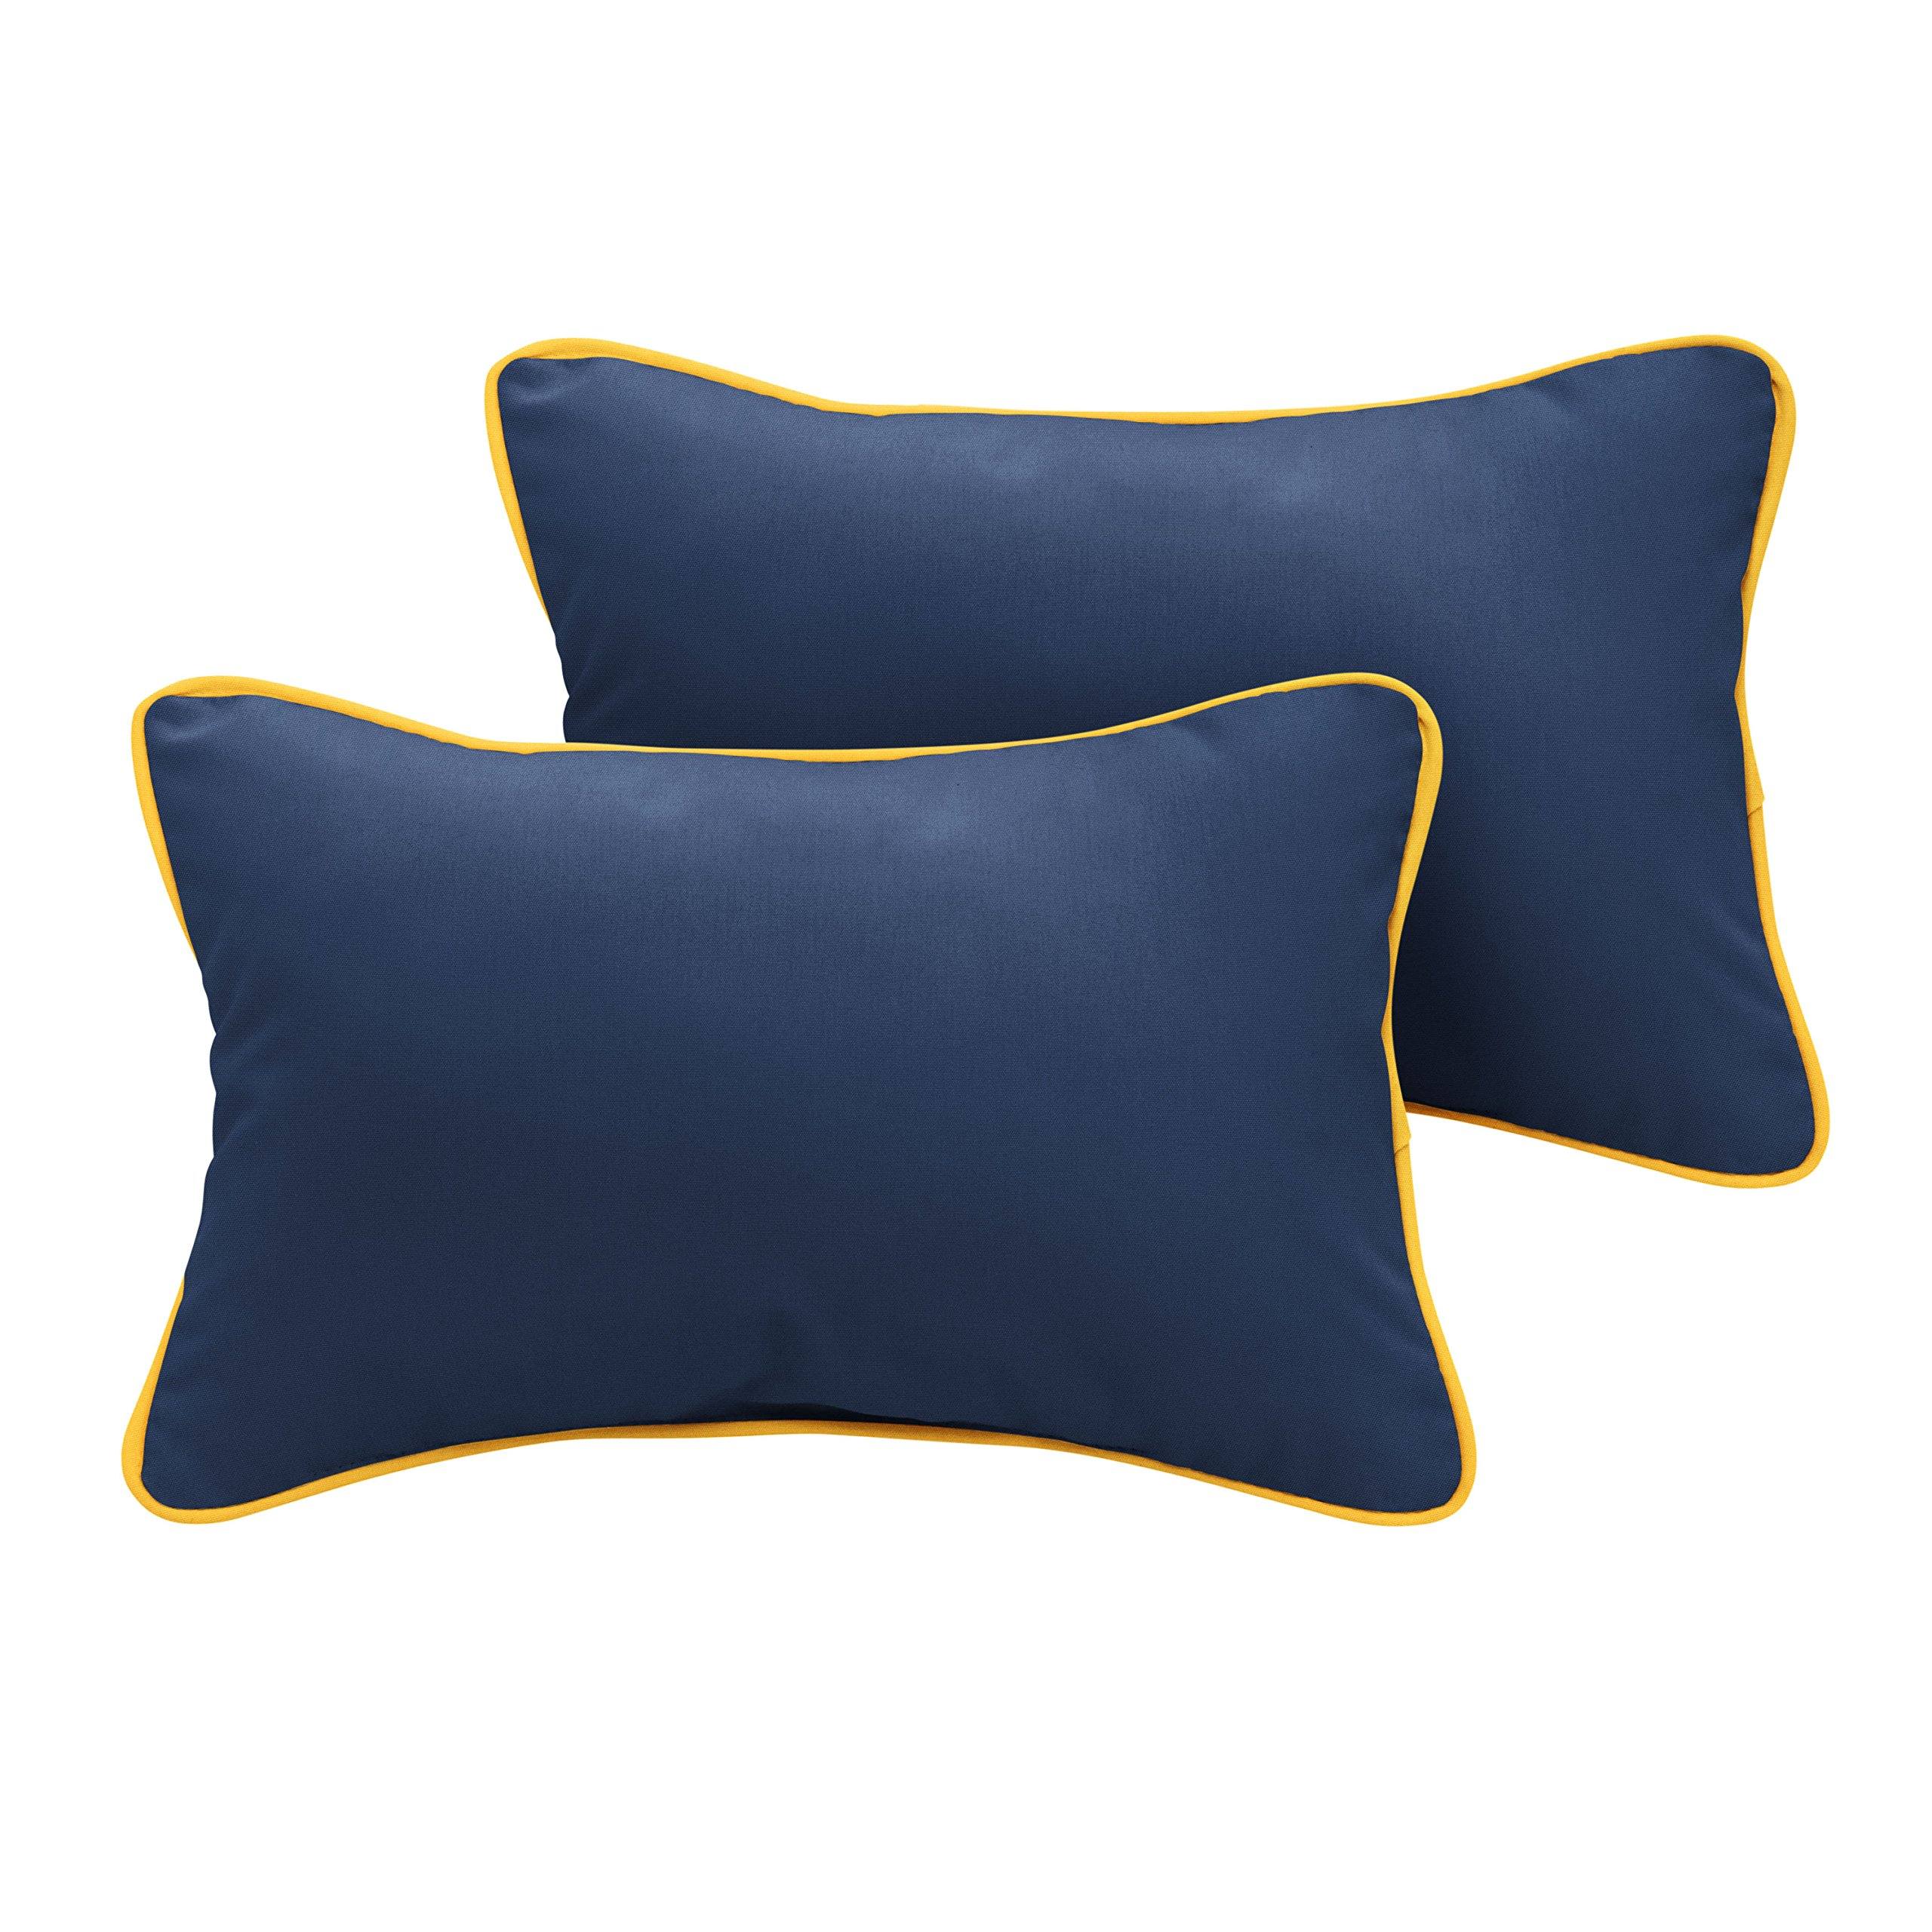 Mozaic Company AMPS111569 Indoor Outdoor Sunbrella Lumbar Pillows with Corded Edges, Set of 2, 18 x 12, Canvas Navy Blue & Sunflower Yellow